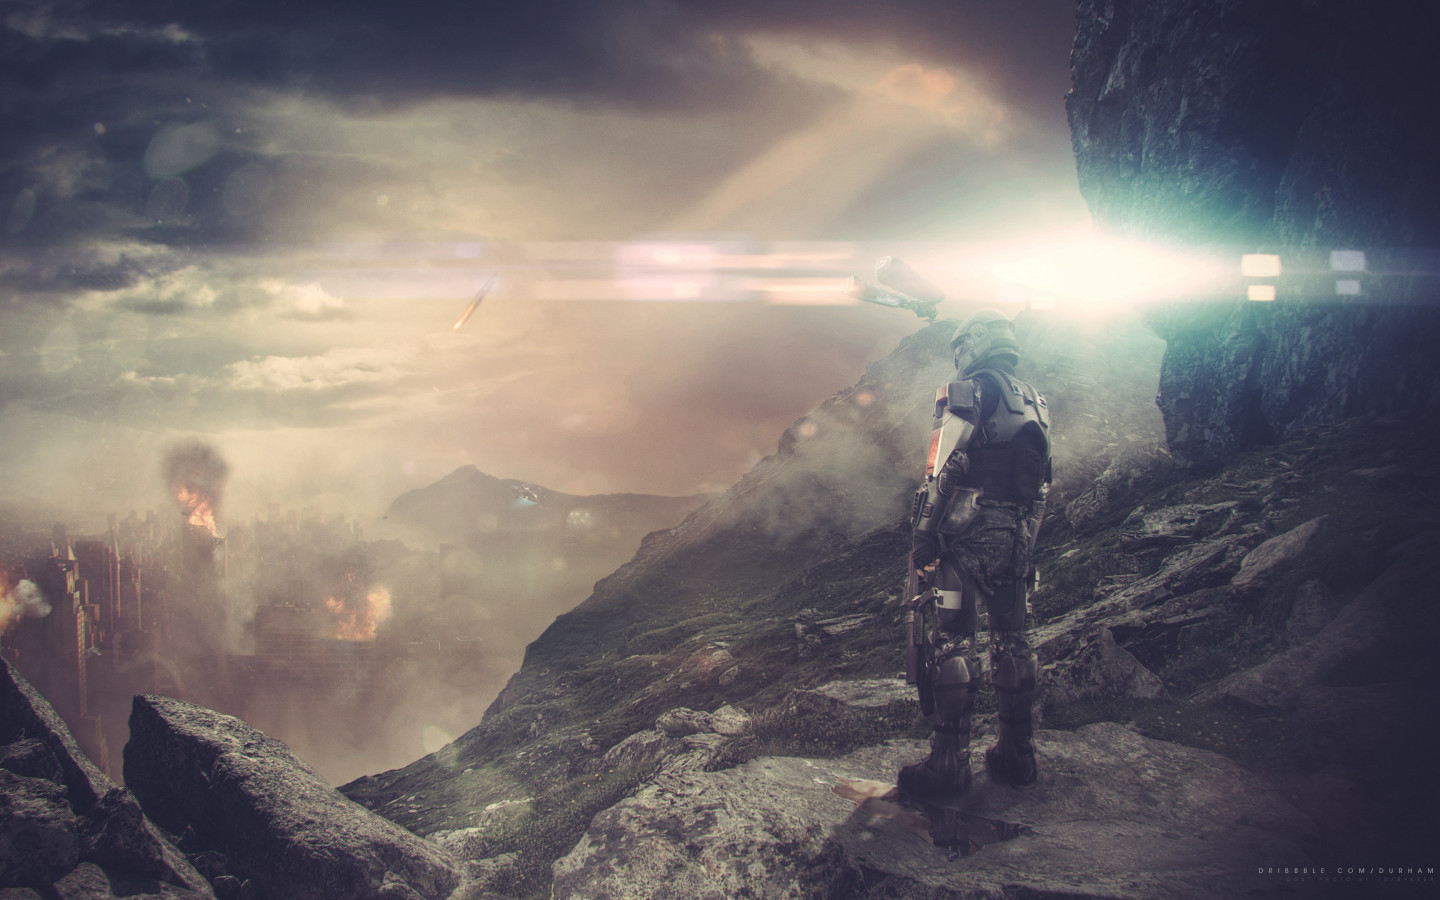 Halo ODST game fan art wallpaper 1440x900